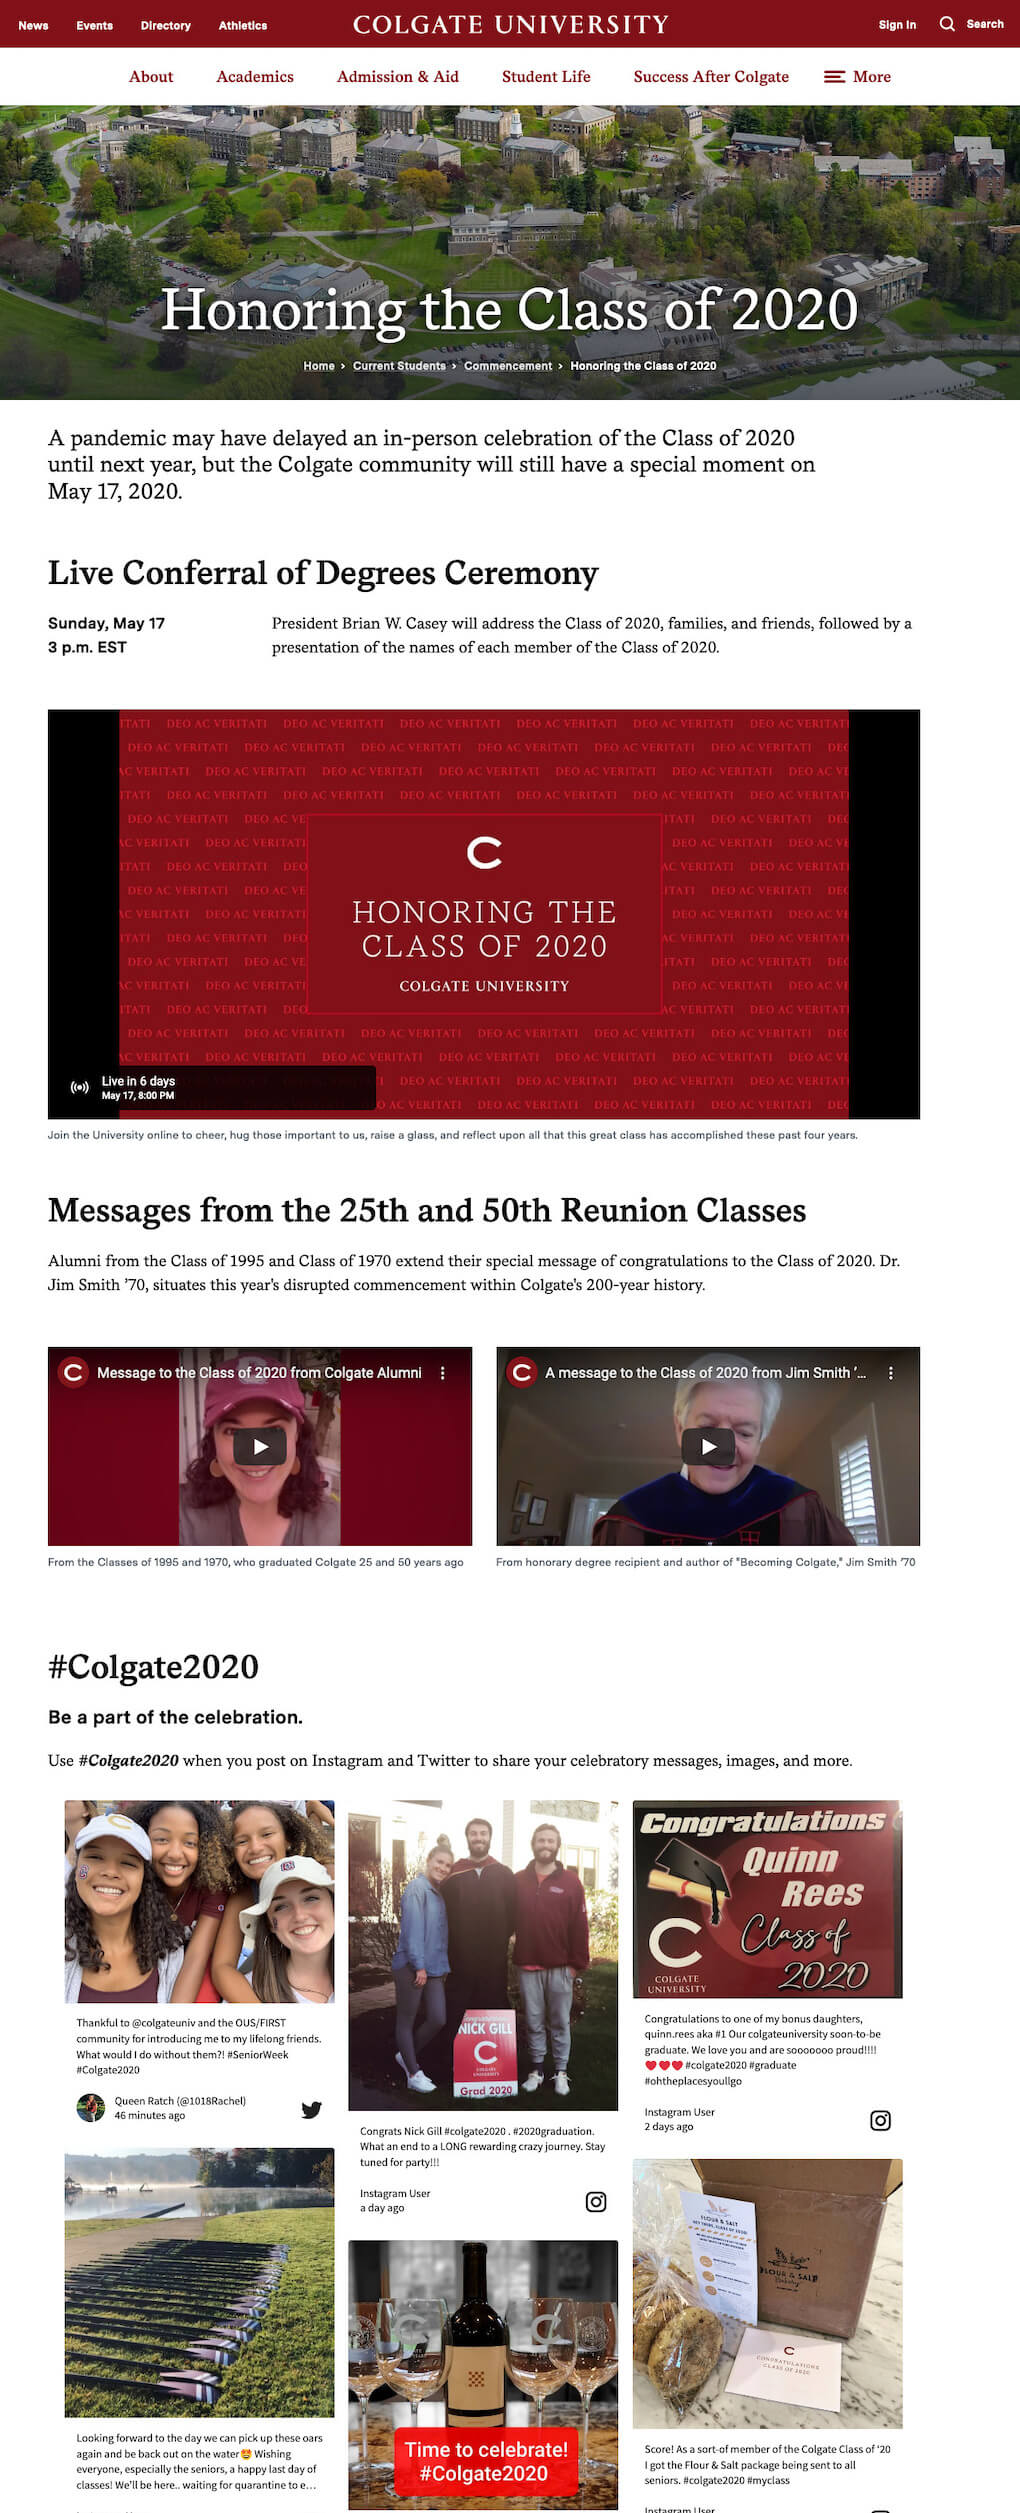 "Screenshot of the Colgate University website. The header reads ""Honoring the Class of 2020"" and the website contains the following sections: a YouTube video embed of the commencement ceremony and conferral of degrees, video messages from the 25th and 50th reunion classes and the embedded social wall for the hashtag #Colgate2020."